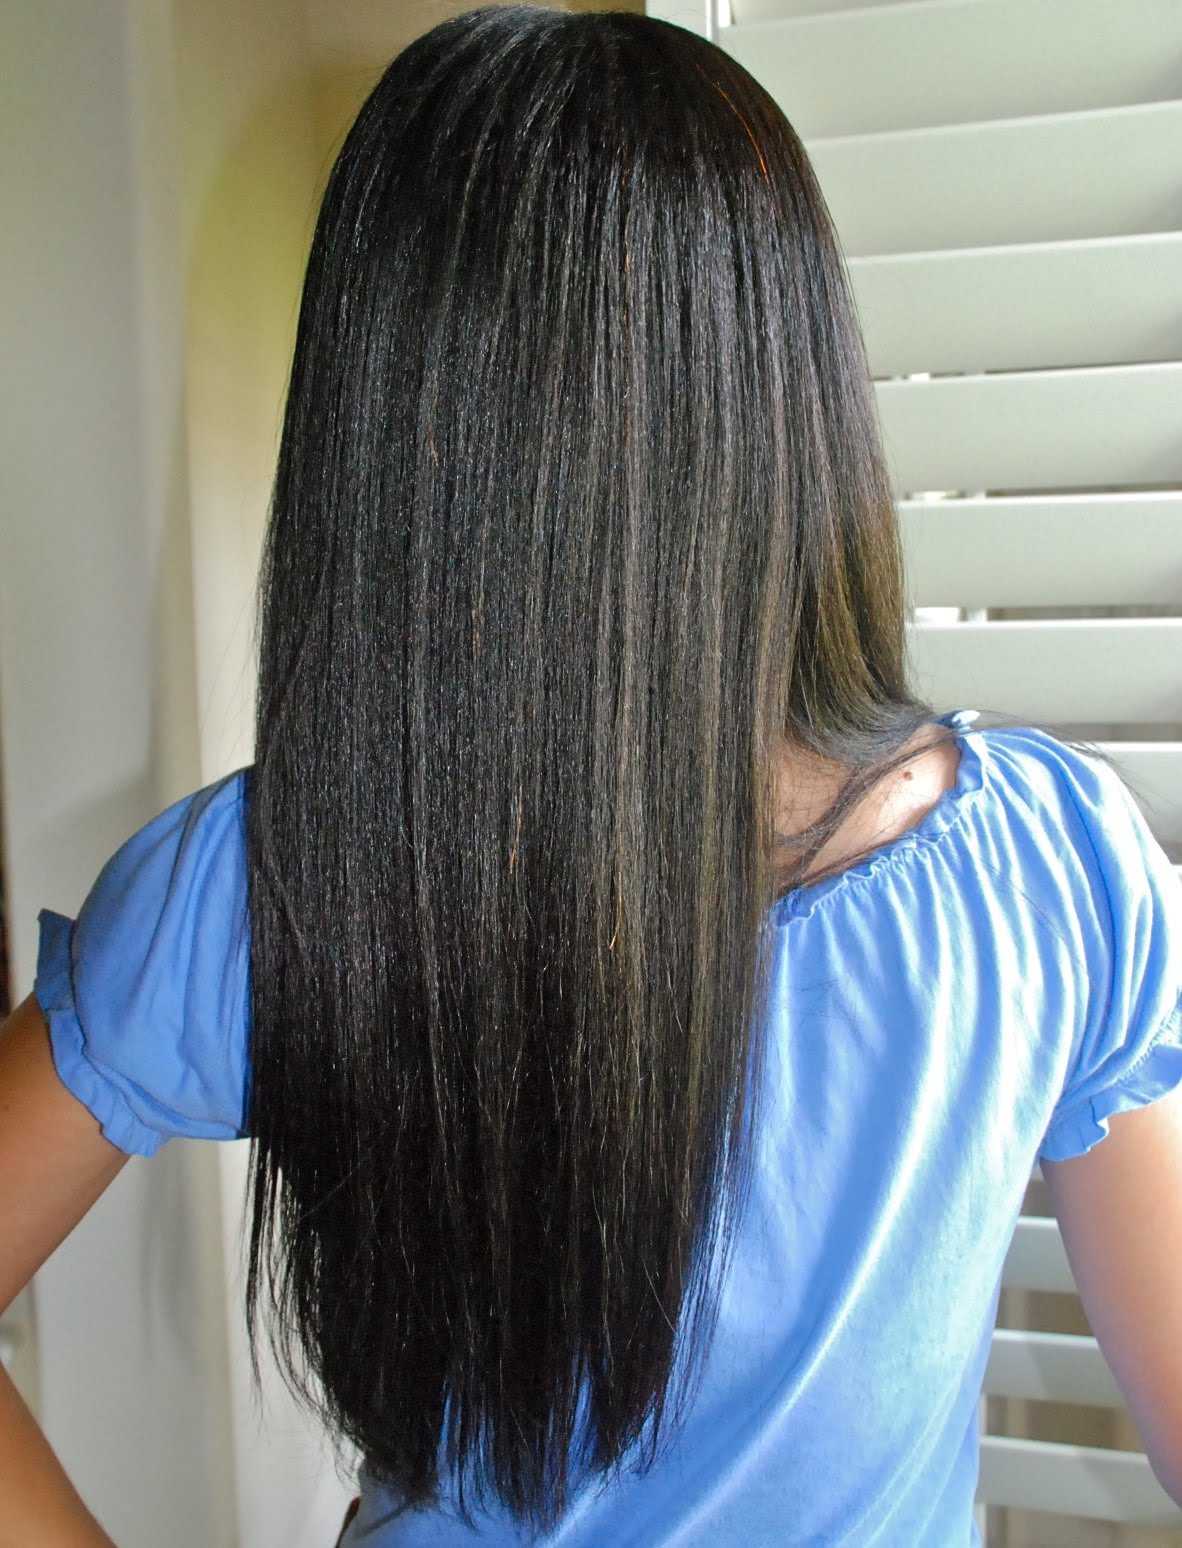 Healthy Relaxed Hair Feature: How does she get such perfect hair